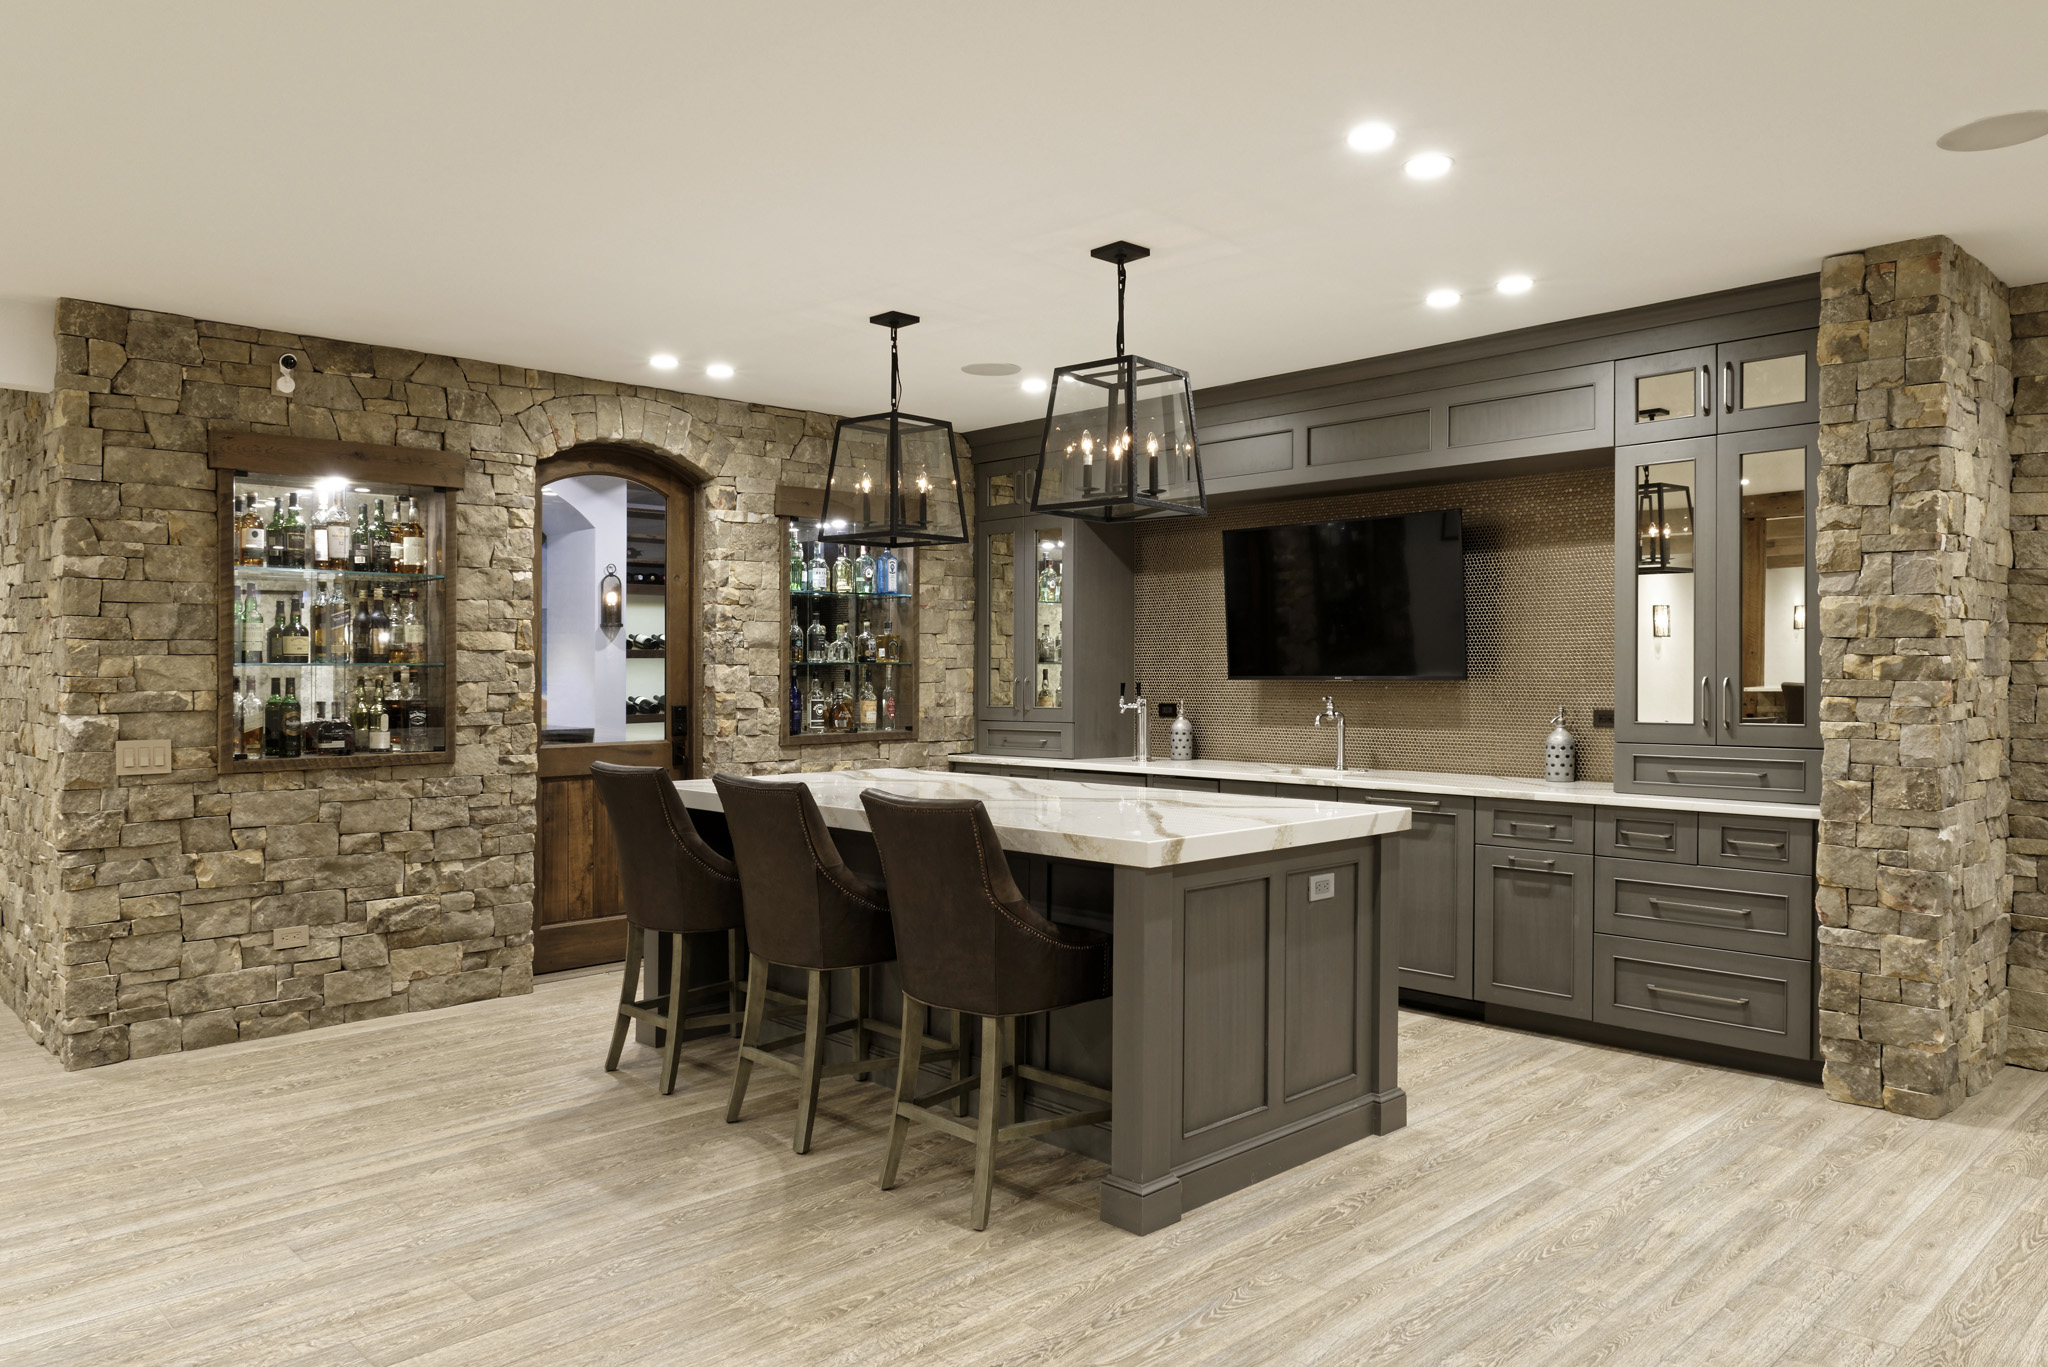 finished basement with stone walls, wet bar and wine cellar